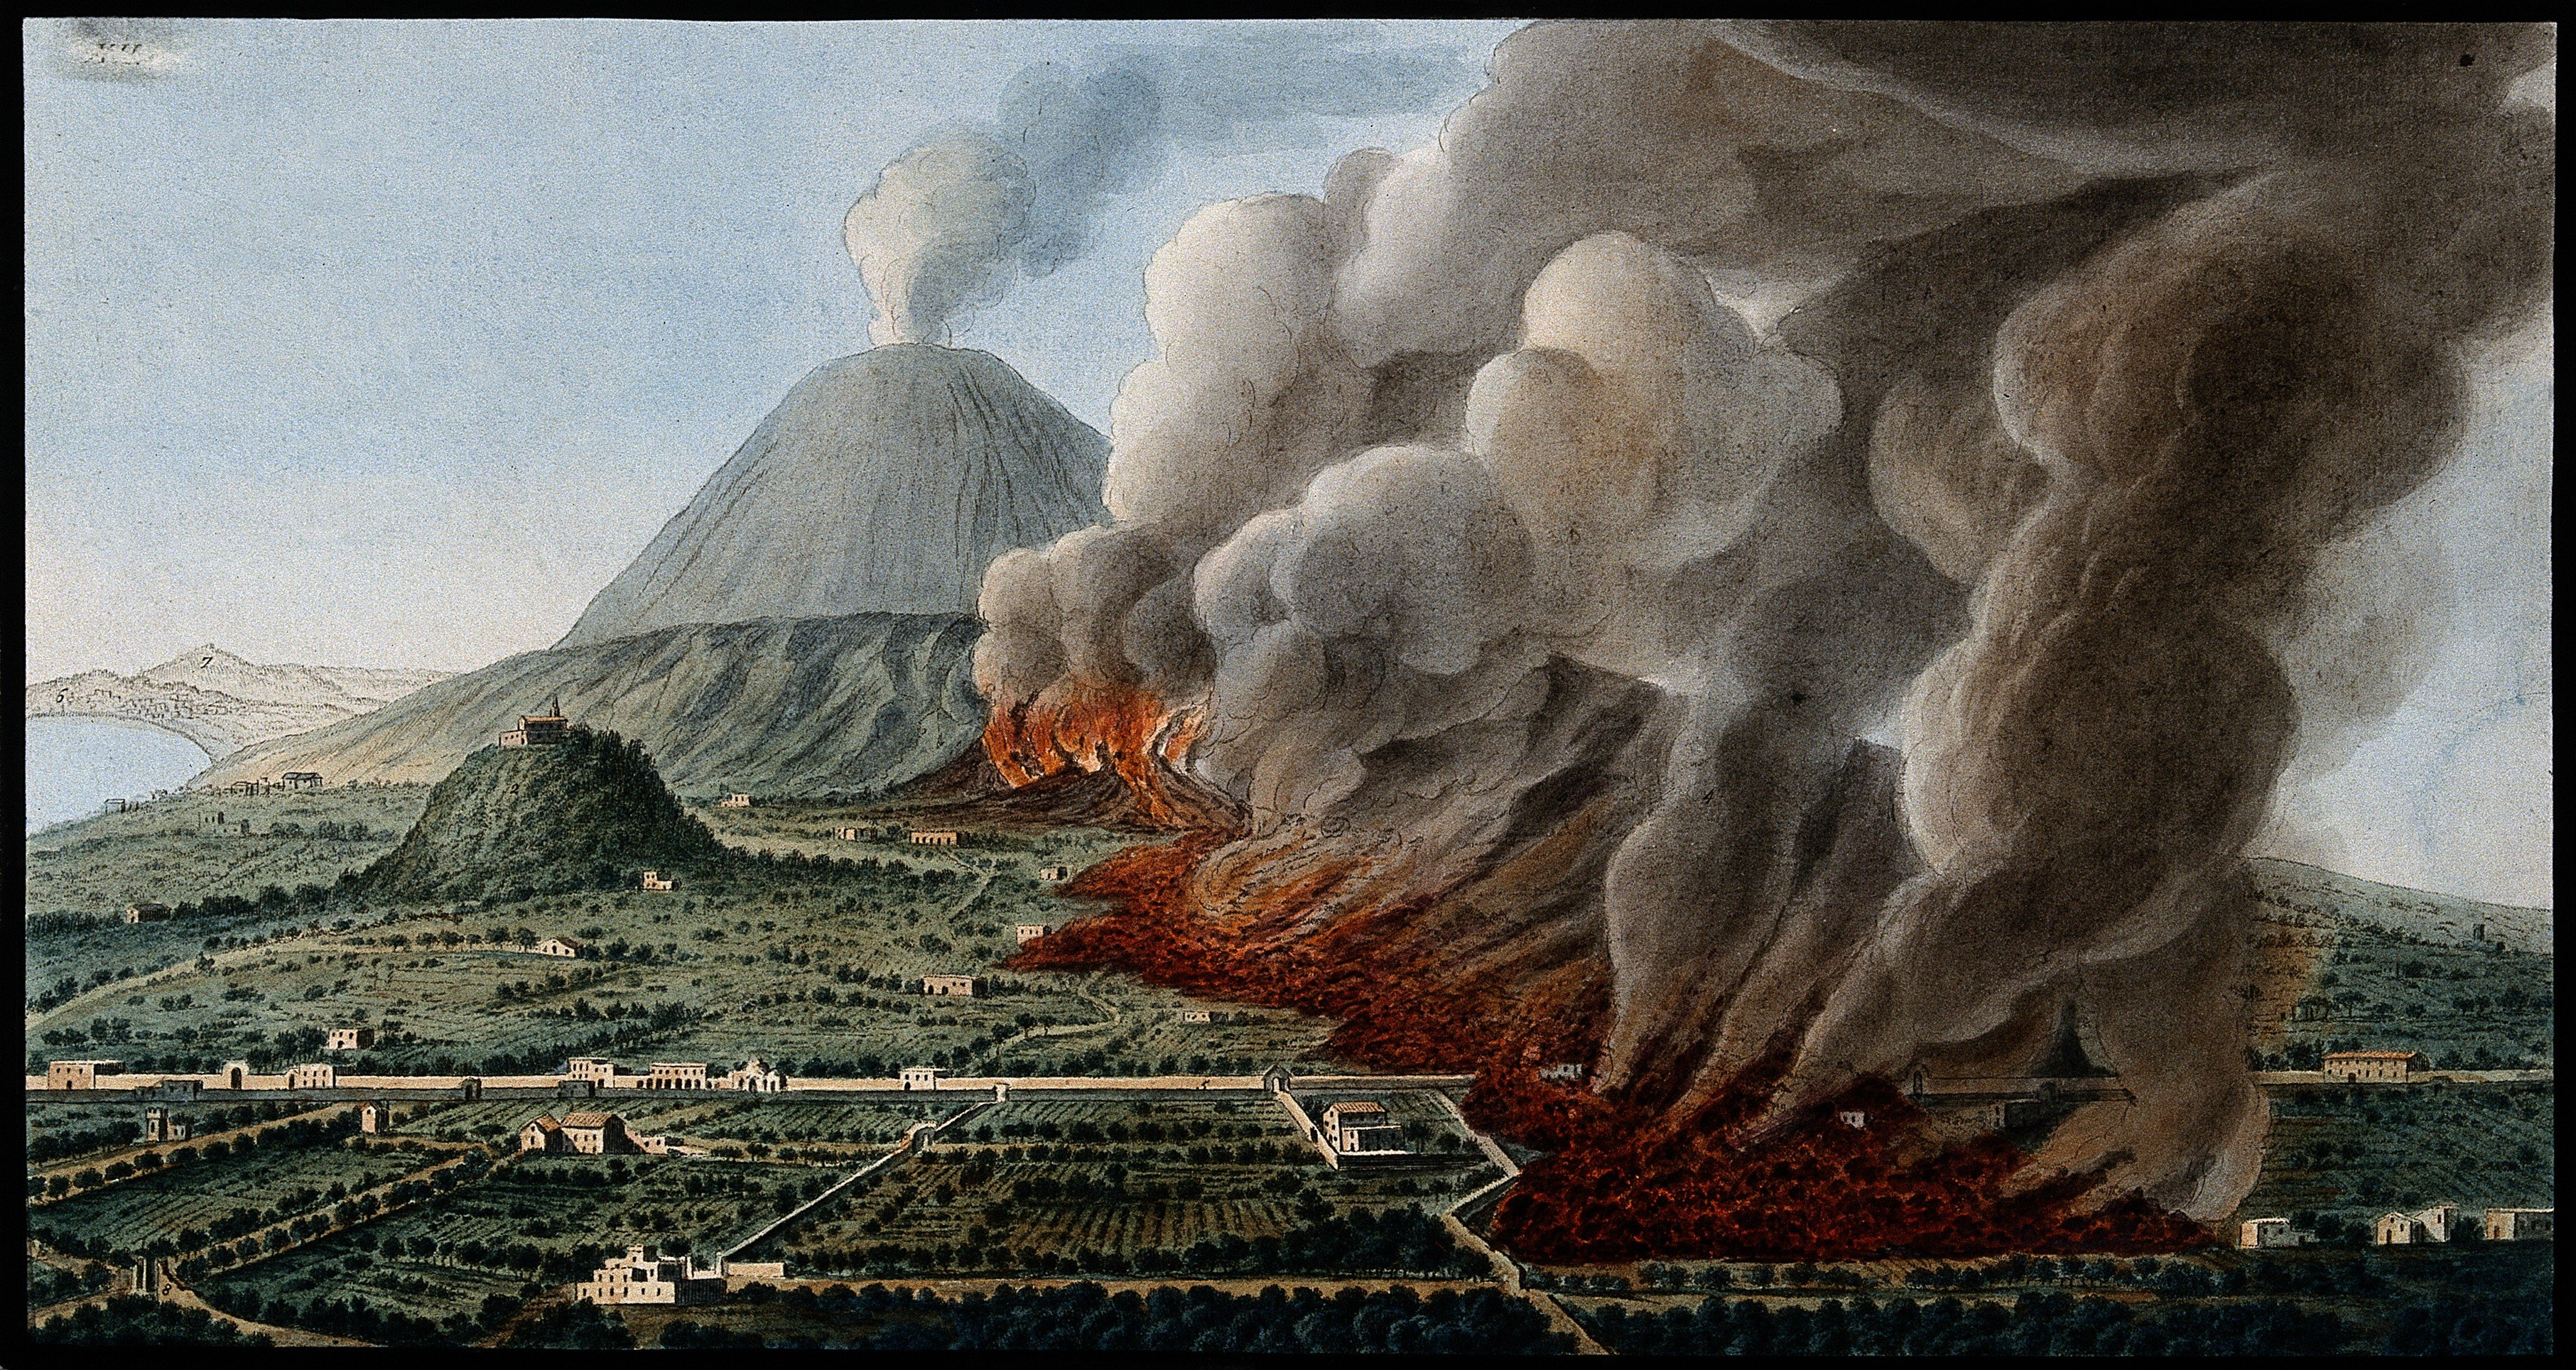 Mount Vesuvius: a volcanic eruption at the foot of the mountain | Source: Wikimedia Commons